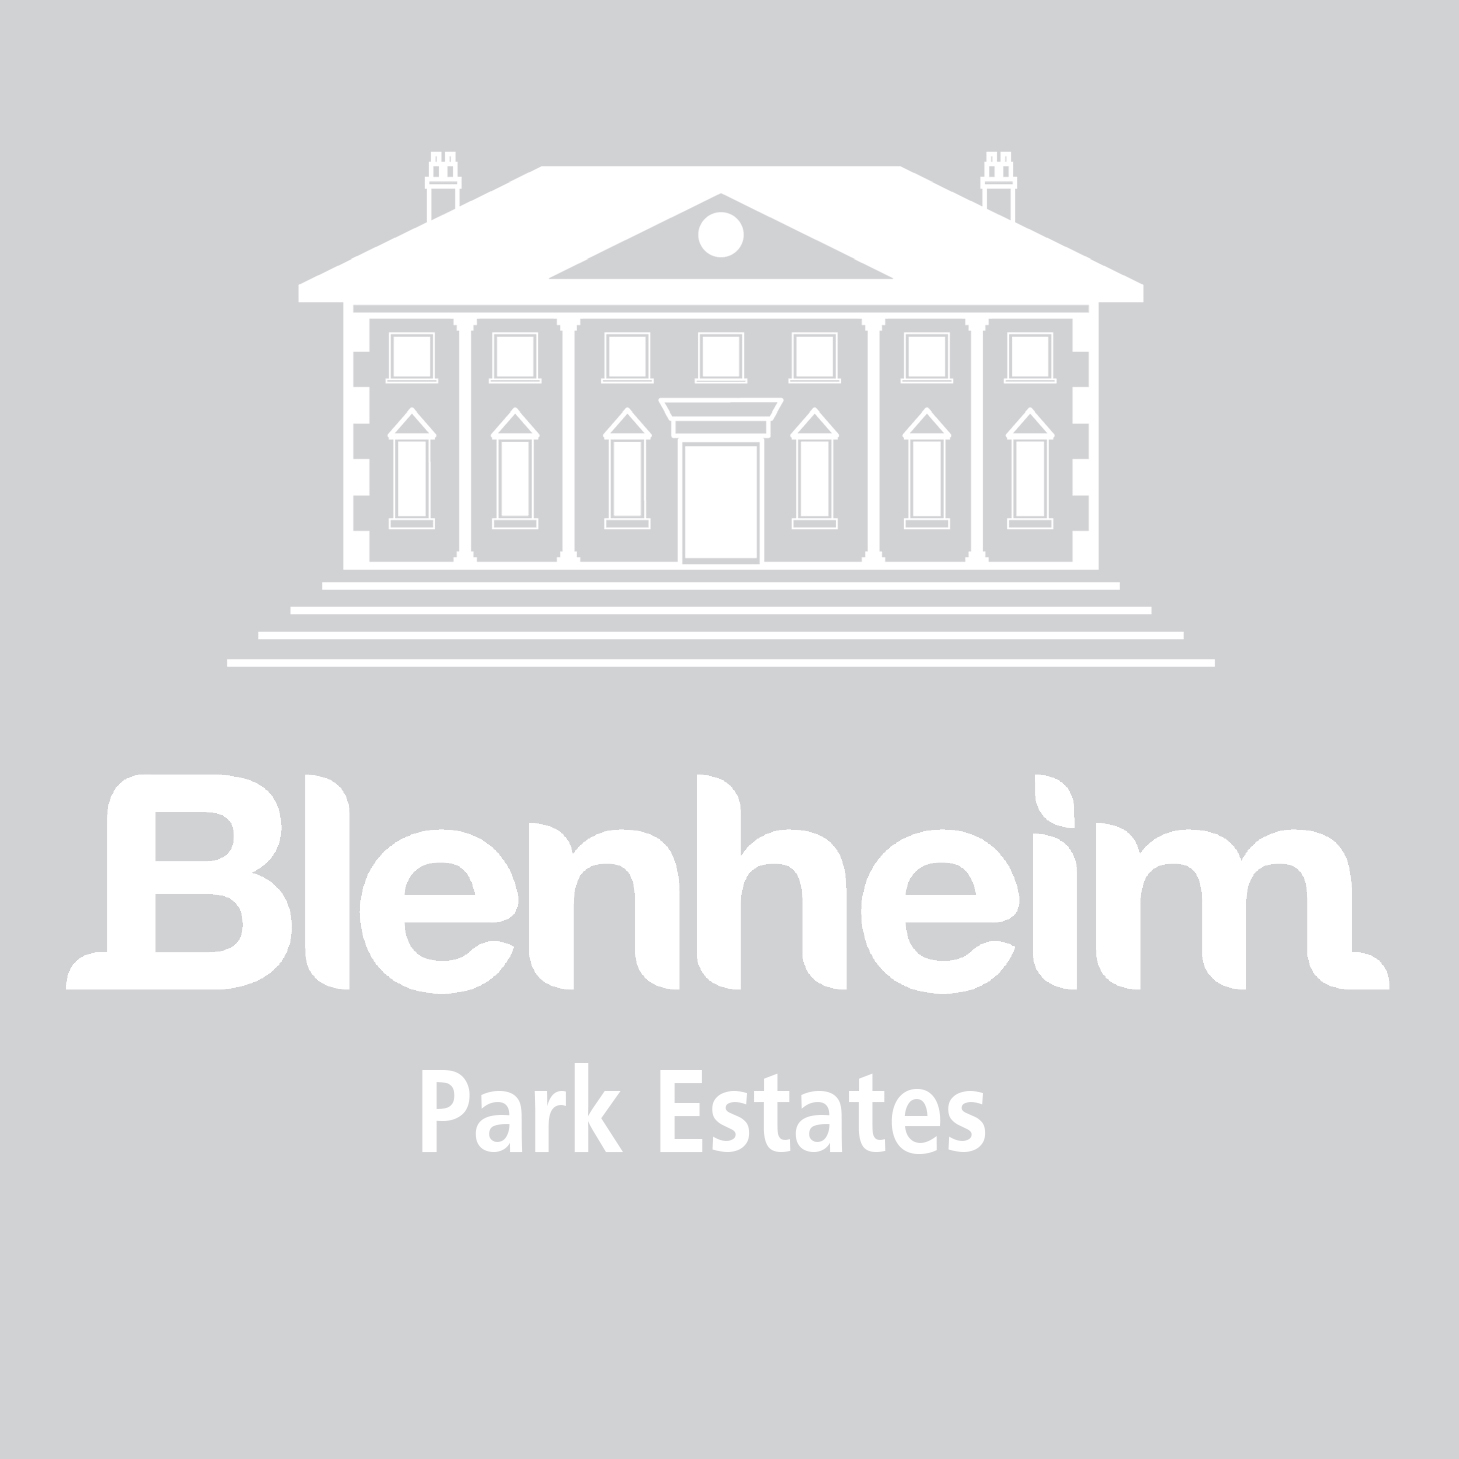 25/7/17 - 25/7/18 12 month blenheim